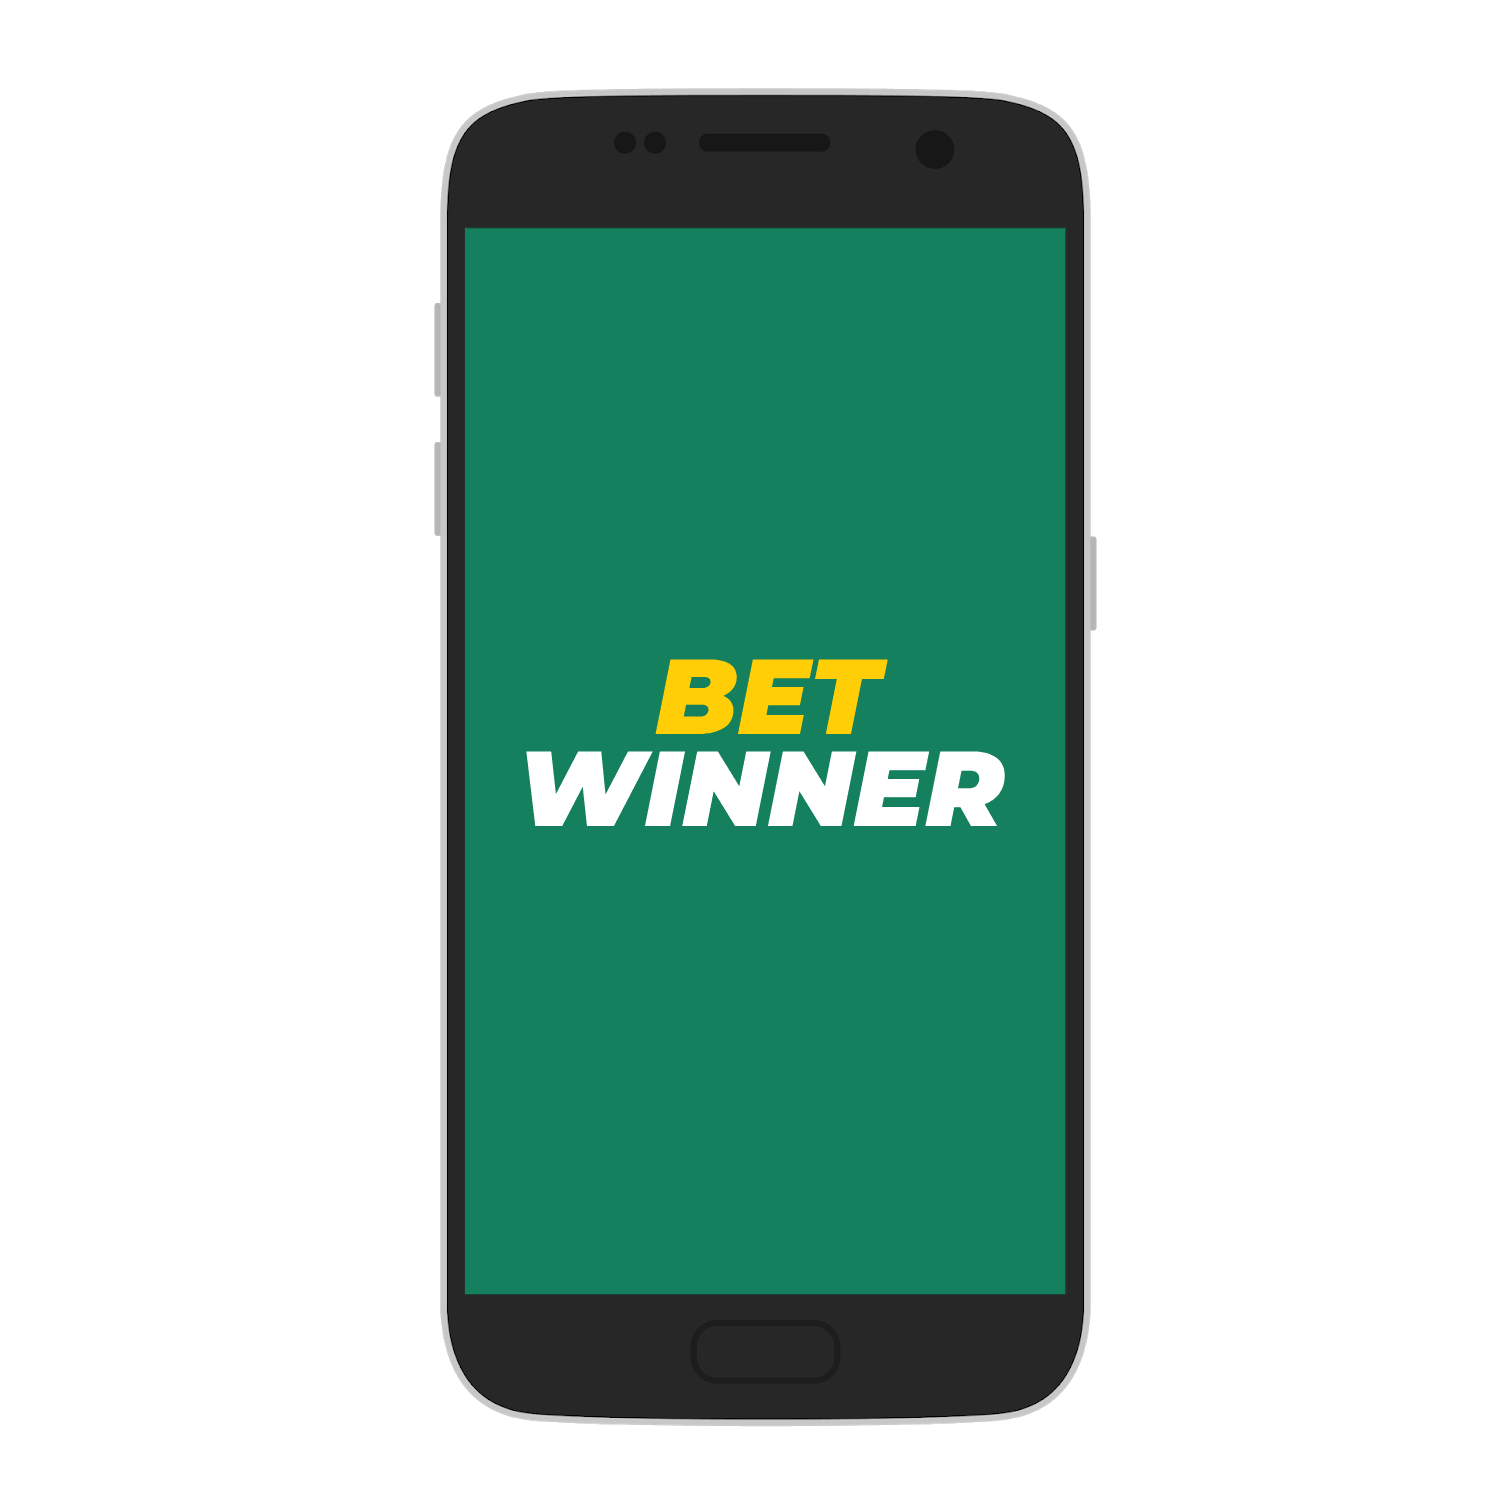 Install bet365 app and start betting on sport via your mobile phone.